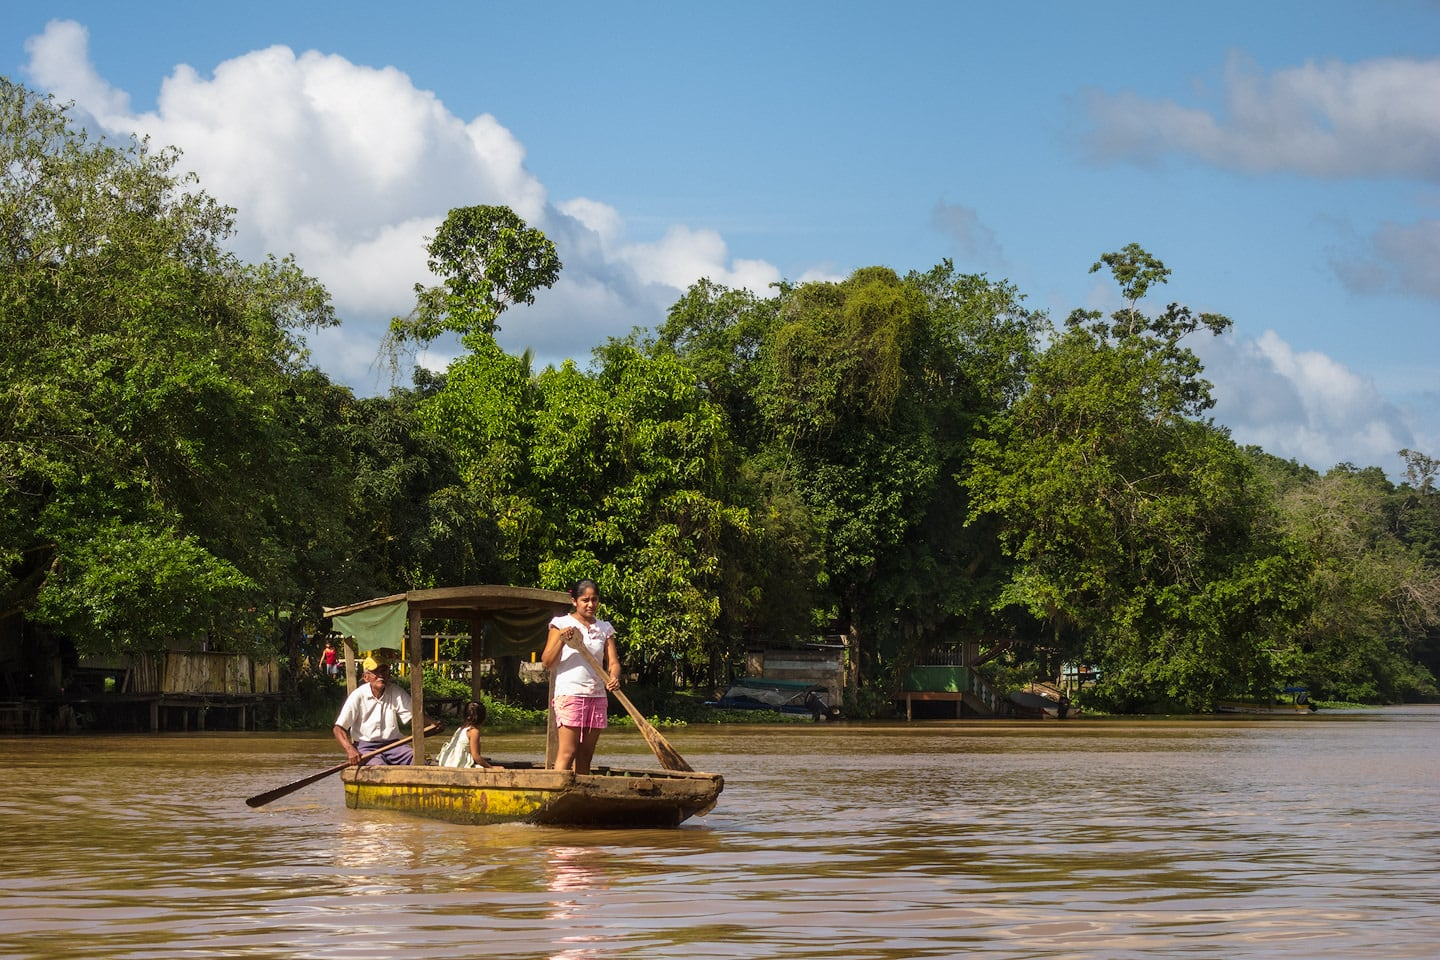 Locals use a small boat to row across the Rio San Juan.